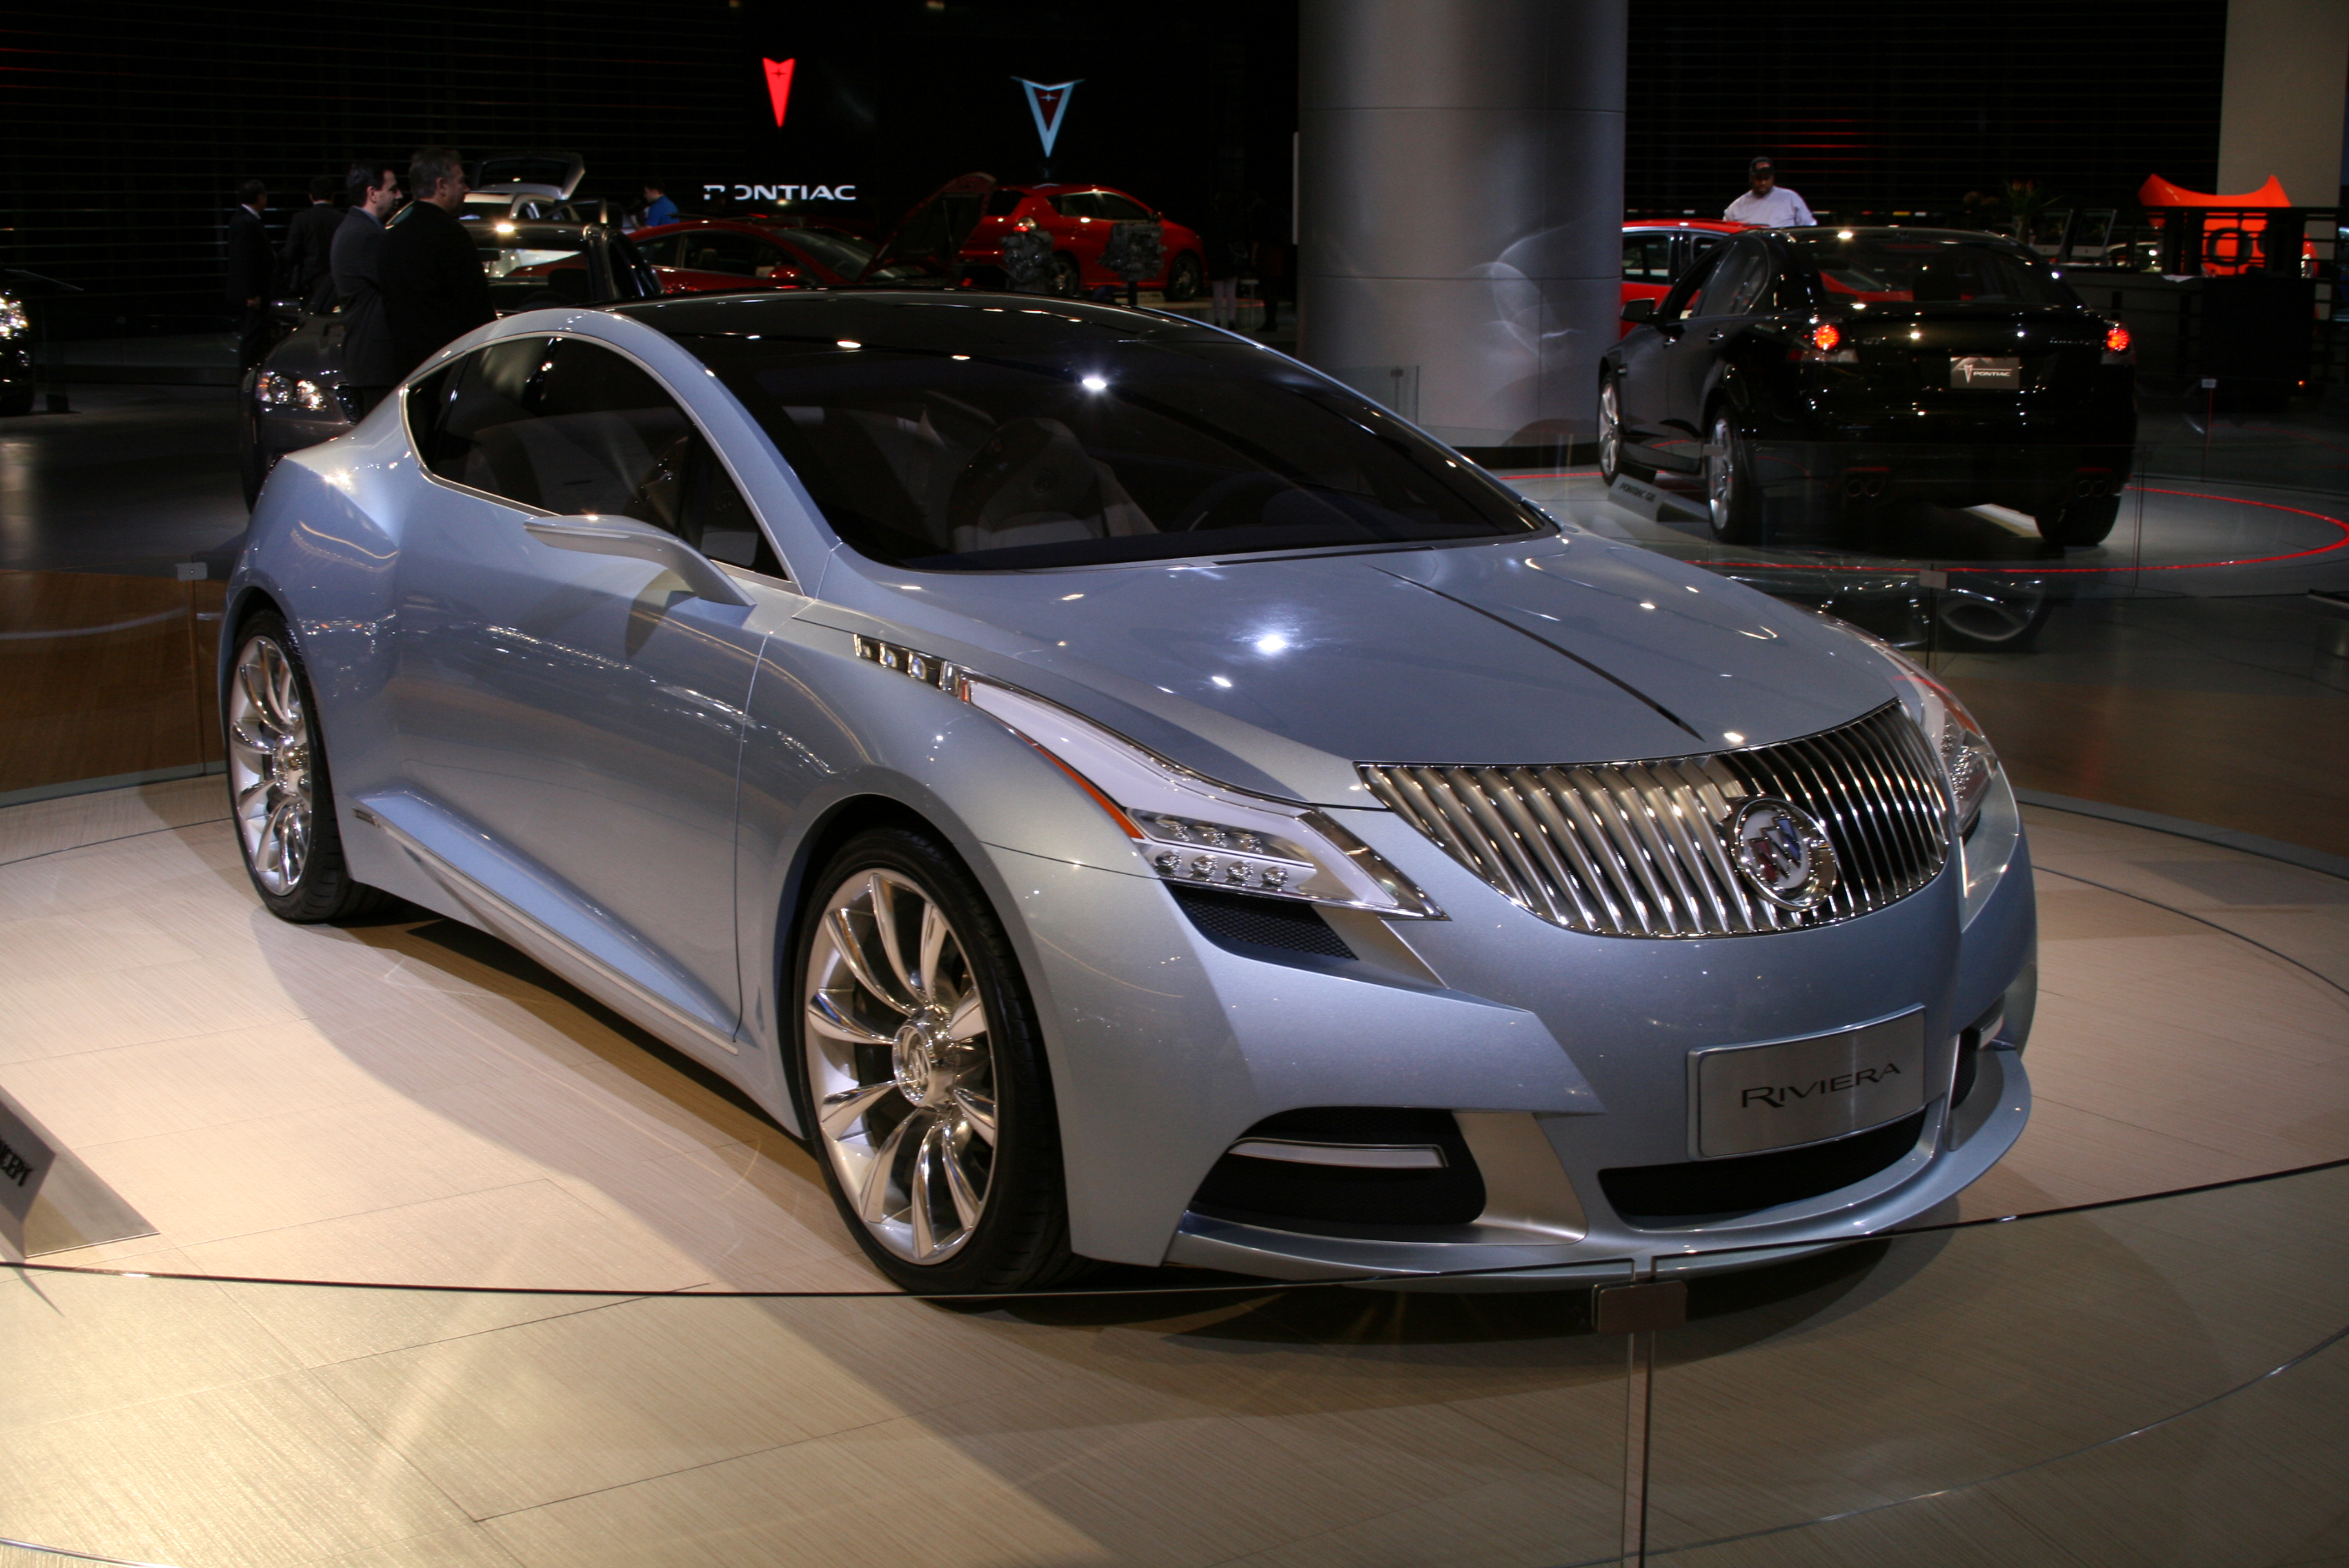 rad gs in regal sharp insignia w extra sports be and this new won s com the url wordpress lookalike tourer opel u t wont powerful precise sheetmetal q buick available files wagon gsi